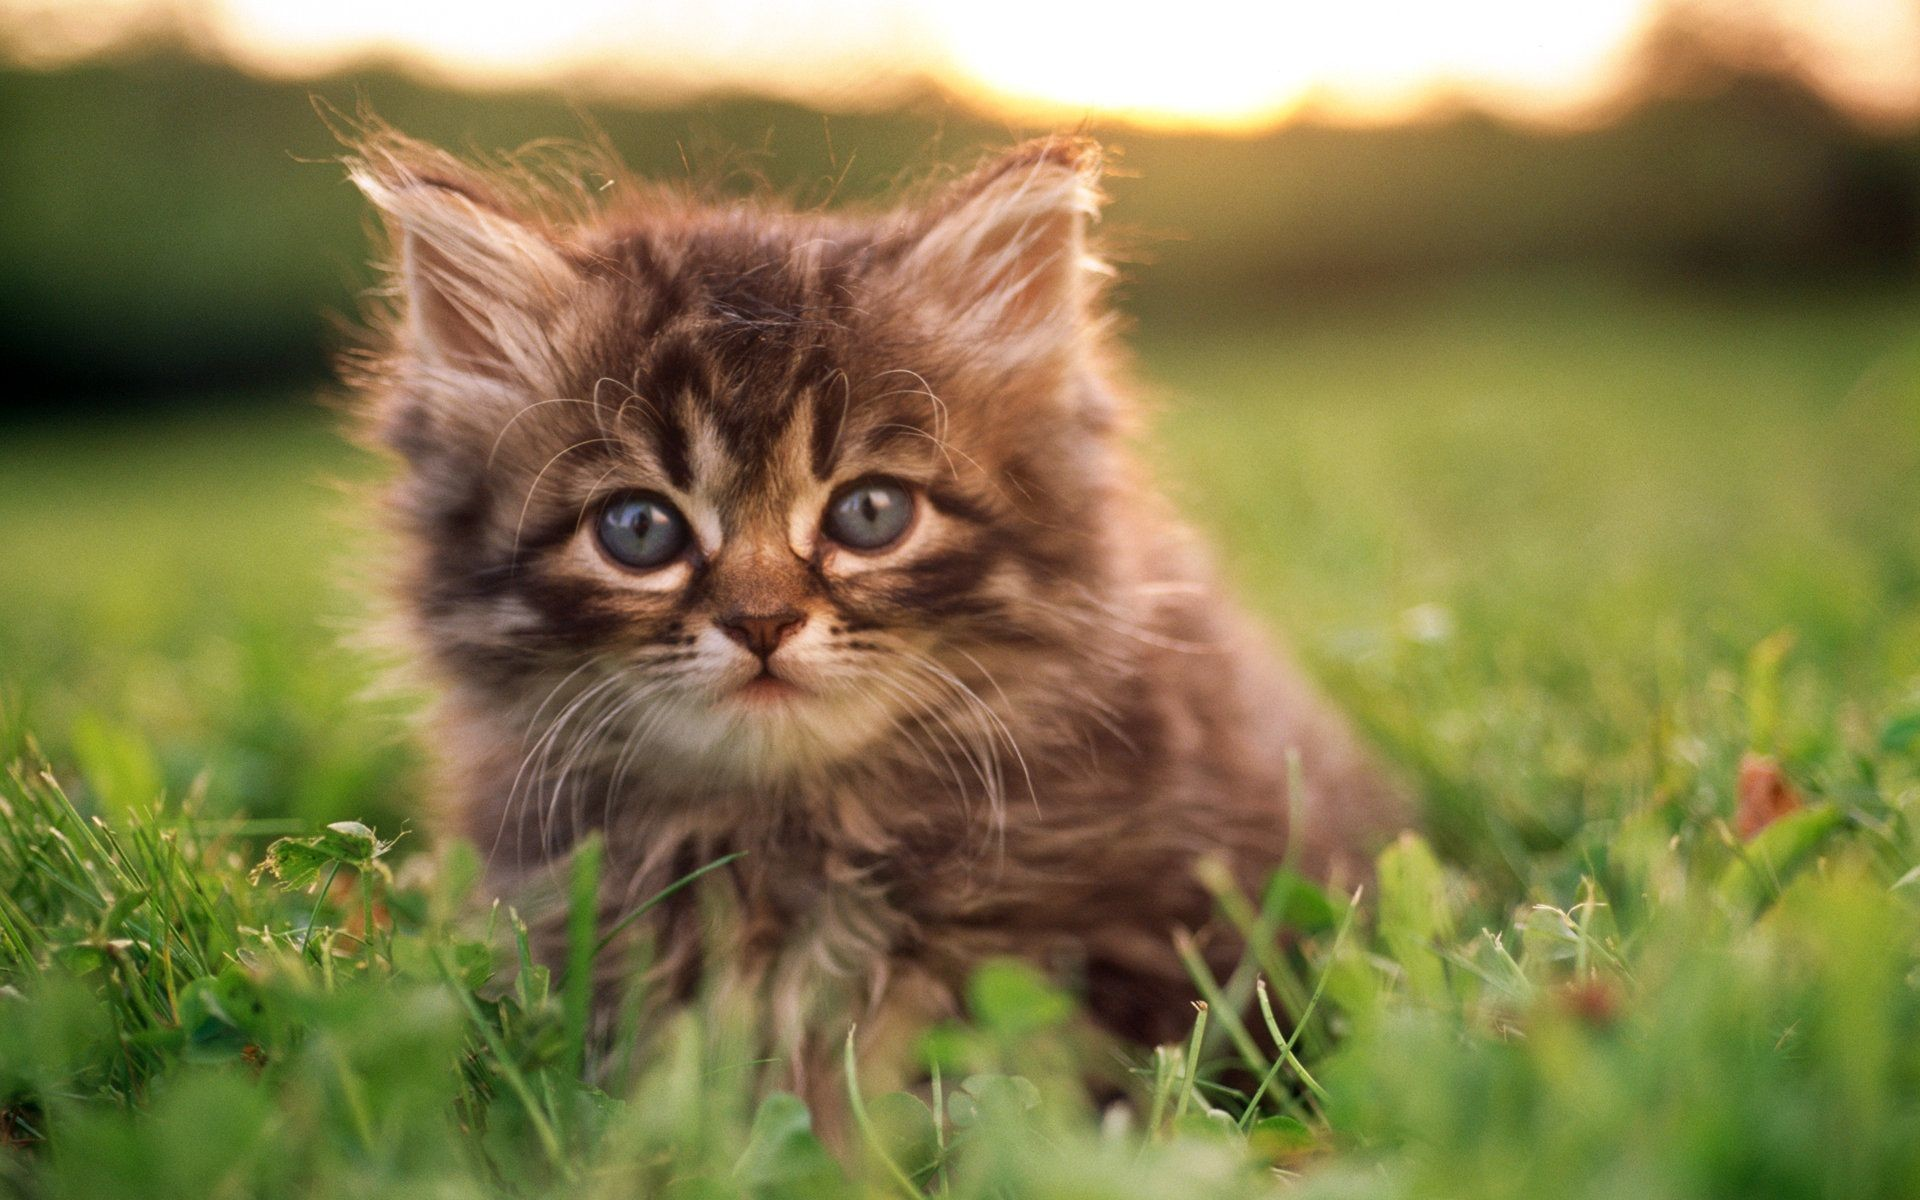 Res: 1920x1200, HD Sweet Kitty : Adorable Fluffy Baby Kittens Widescreen Wallpapers  1920*1200 Wallpaper 25